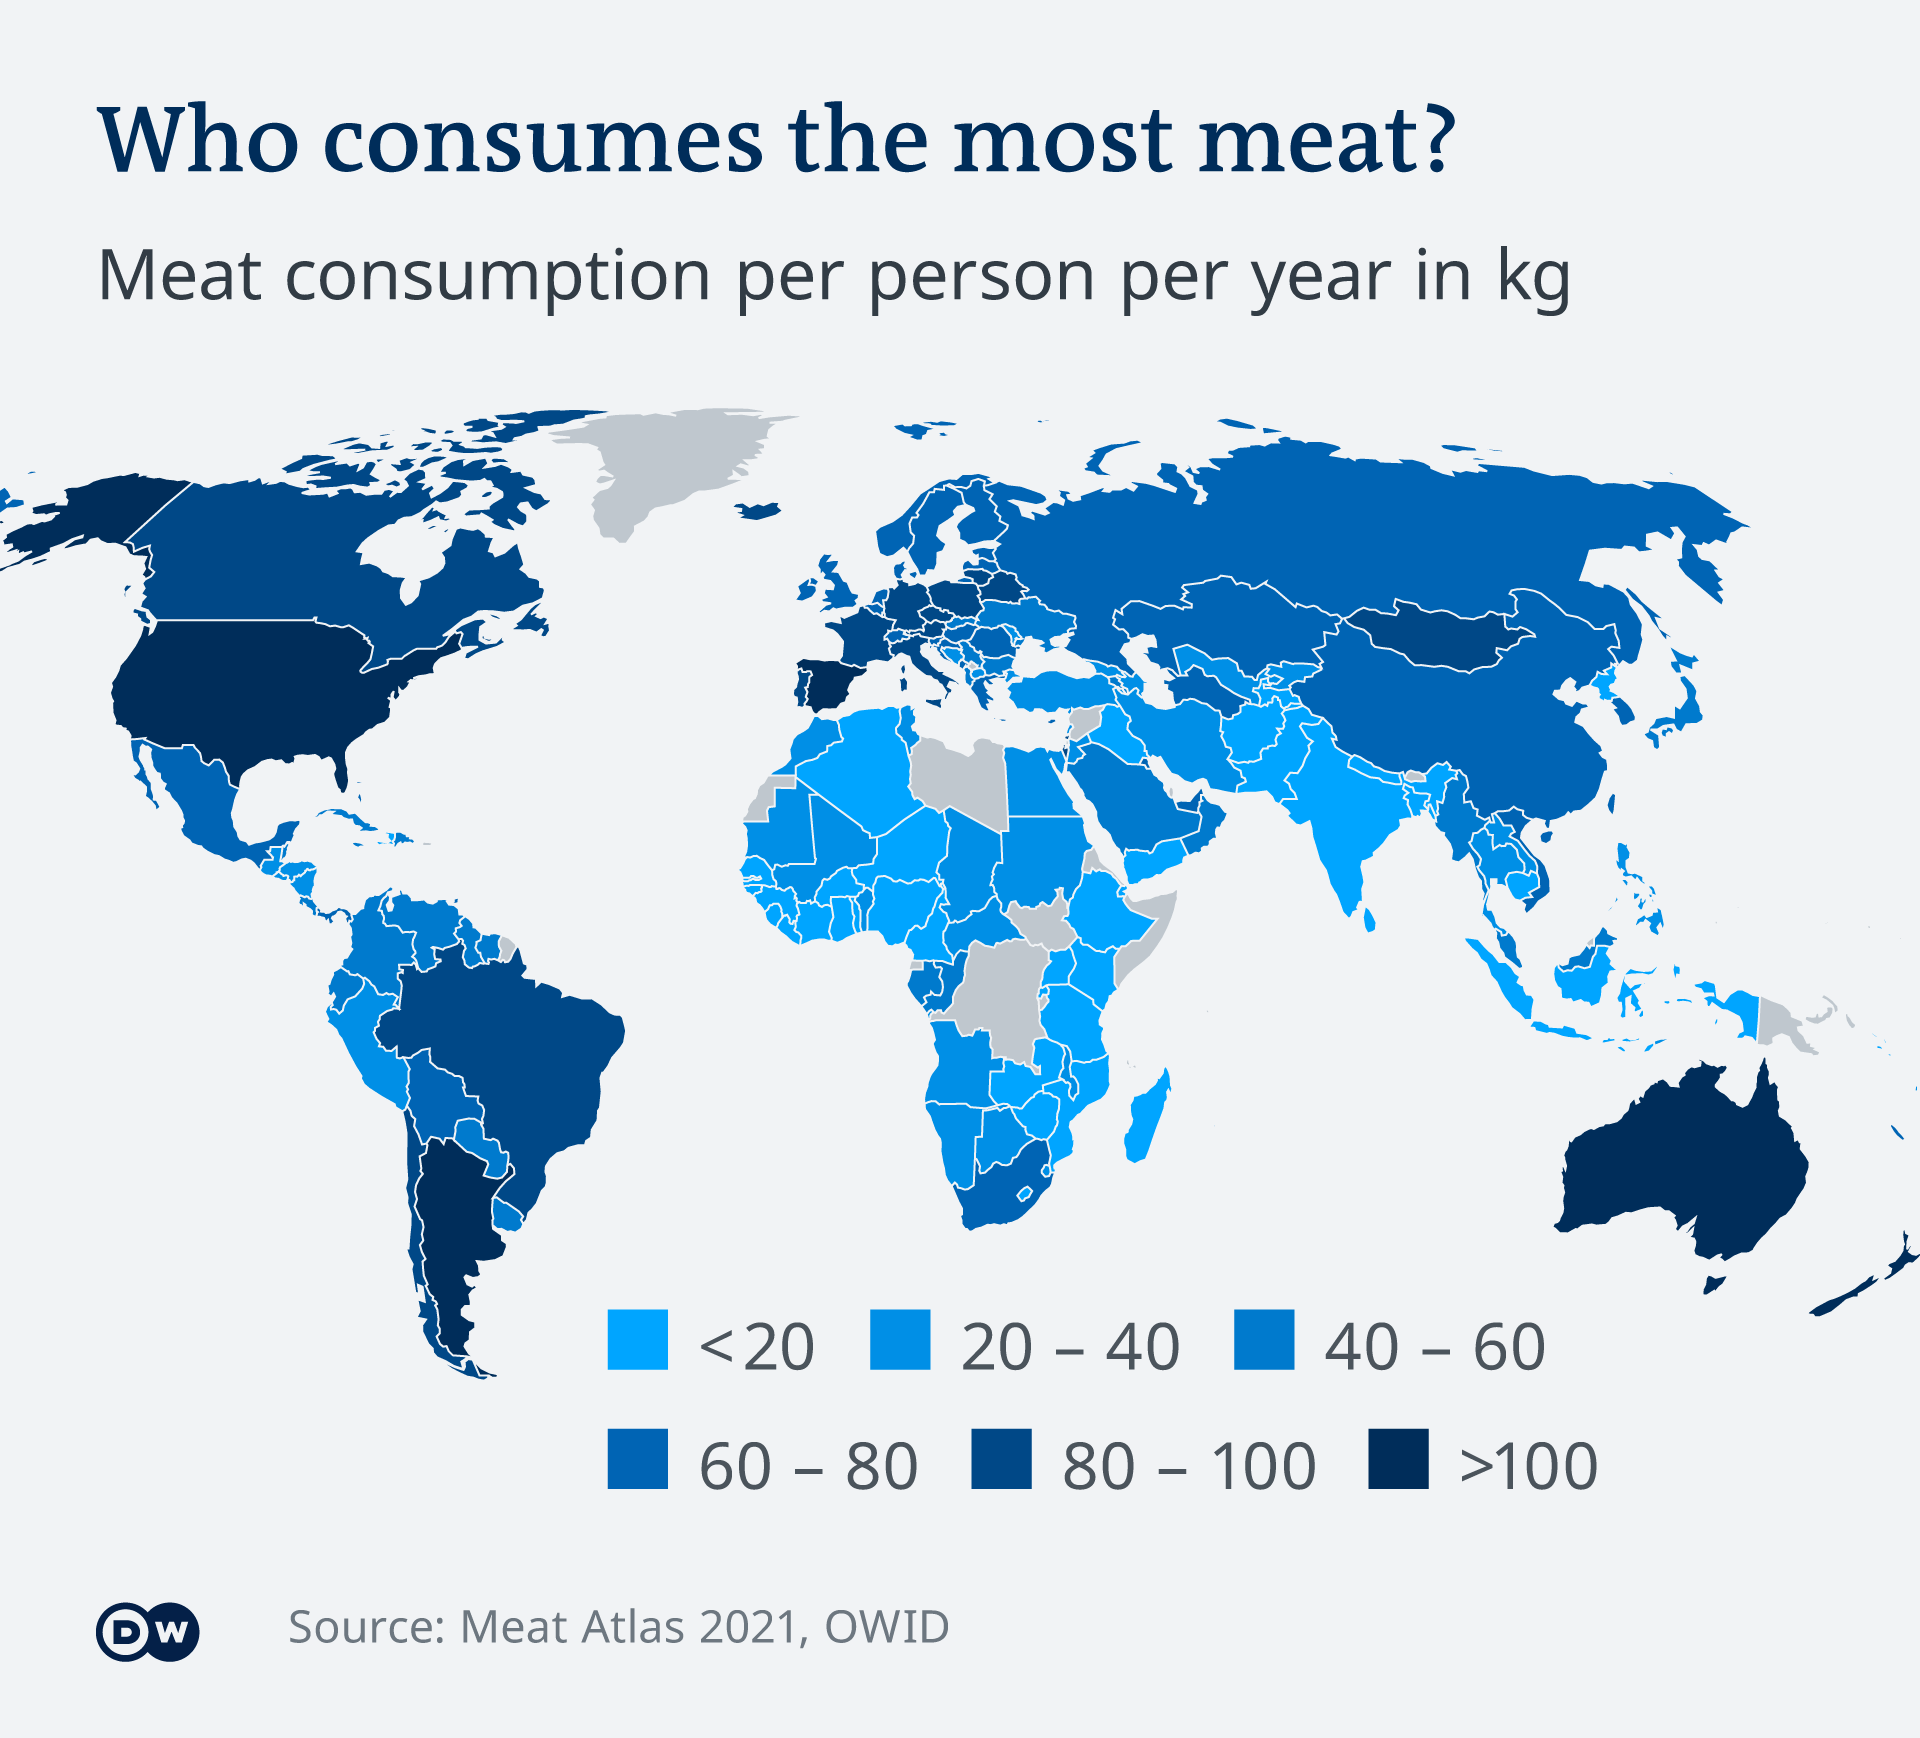 Map showing meat consumption per person per year worldwide